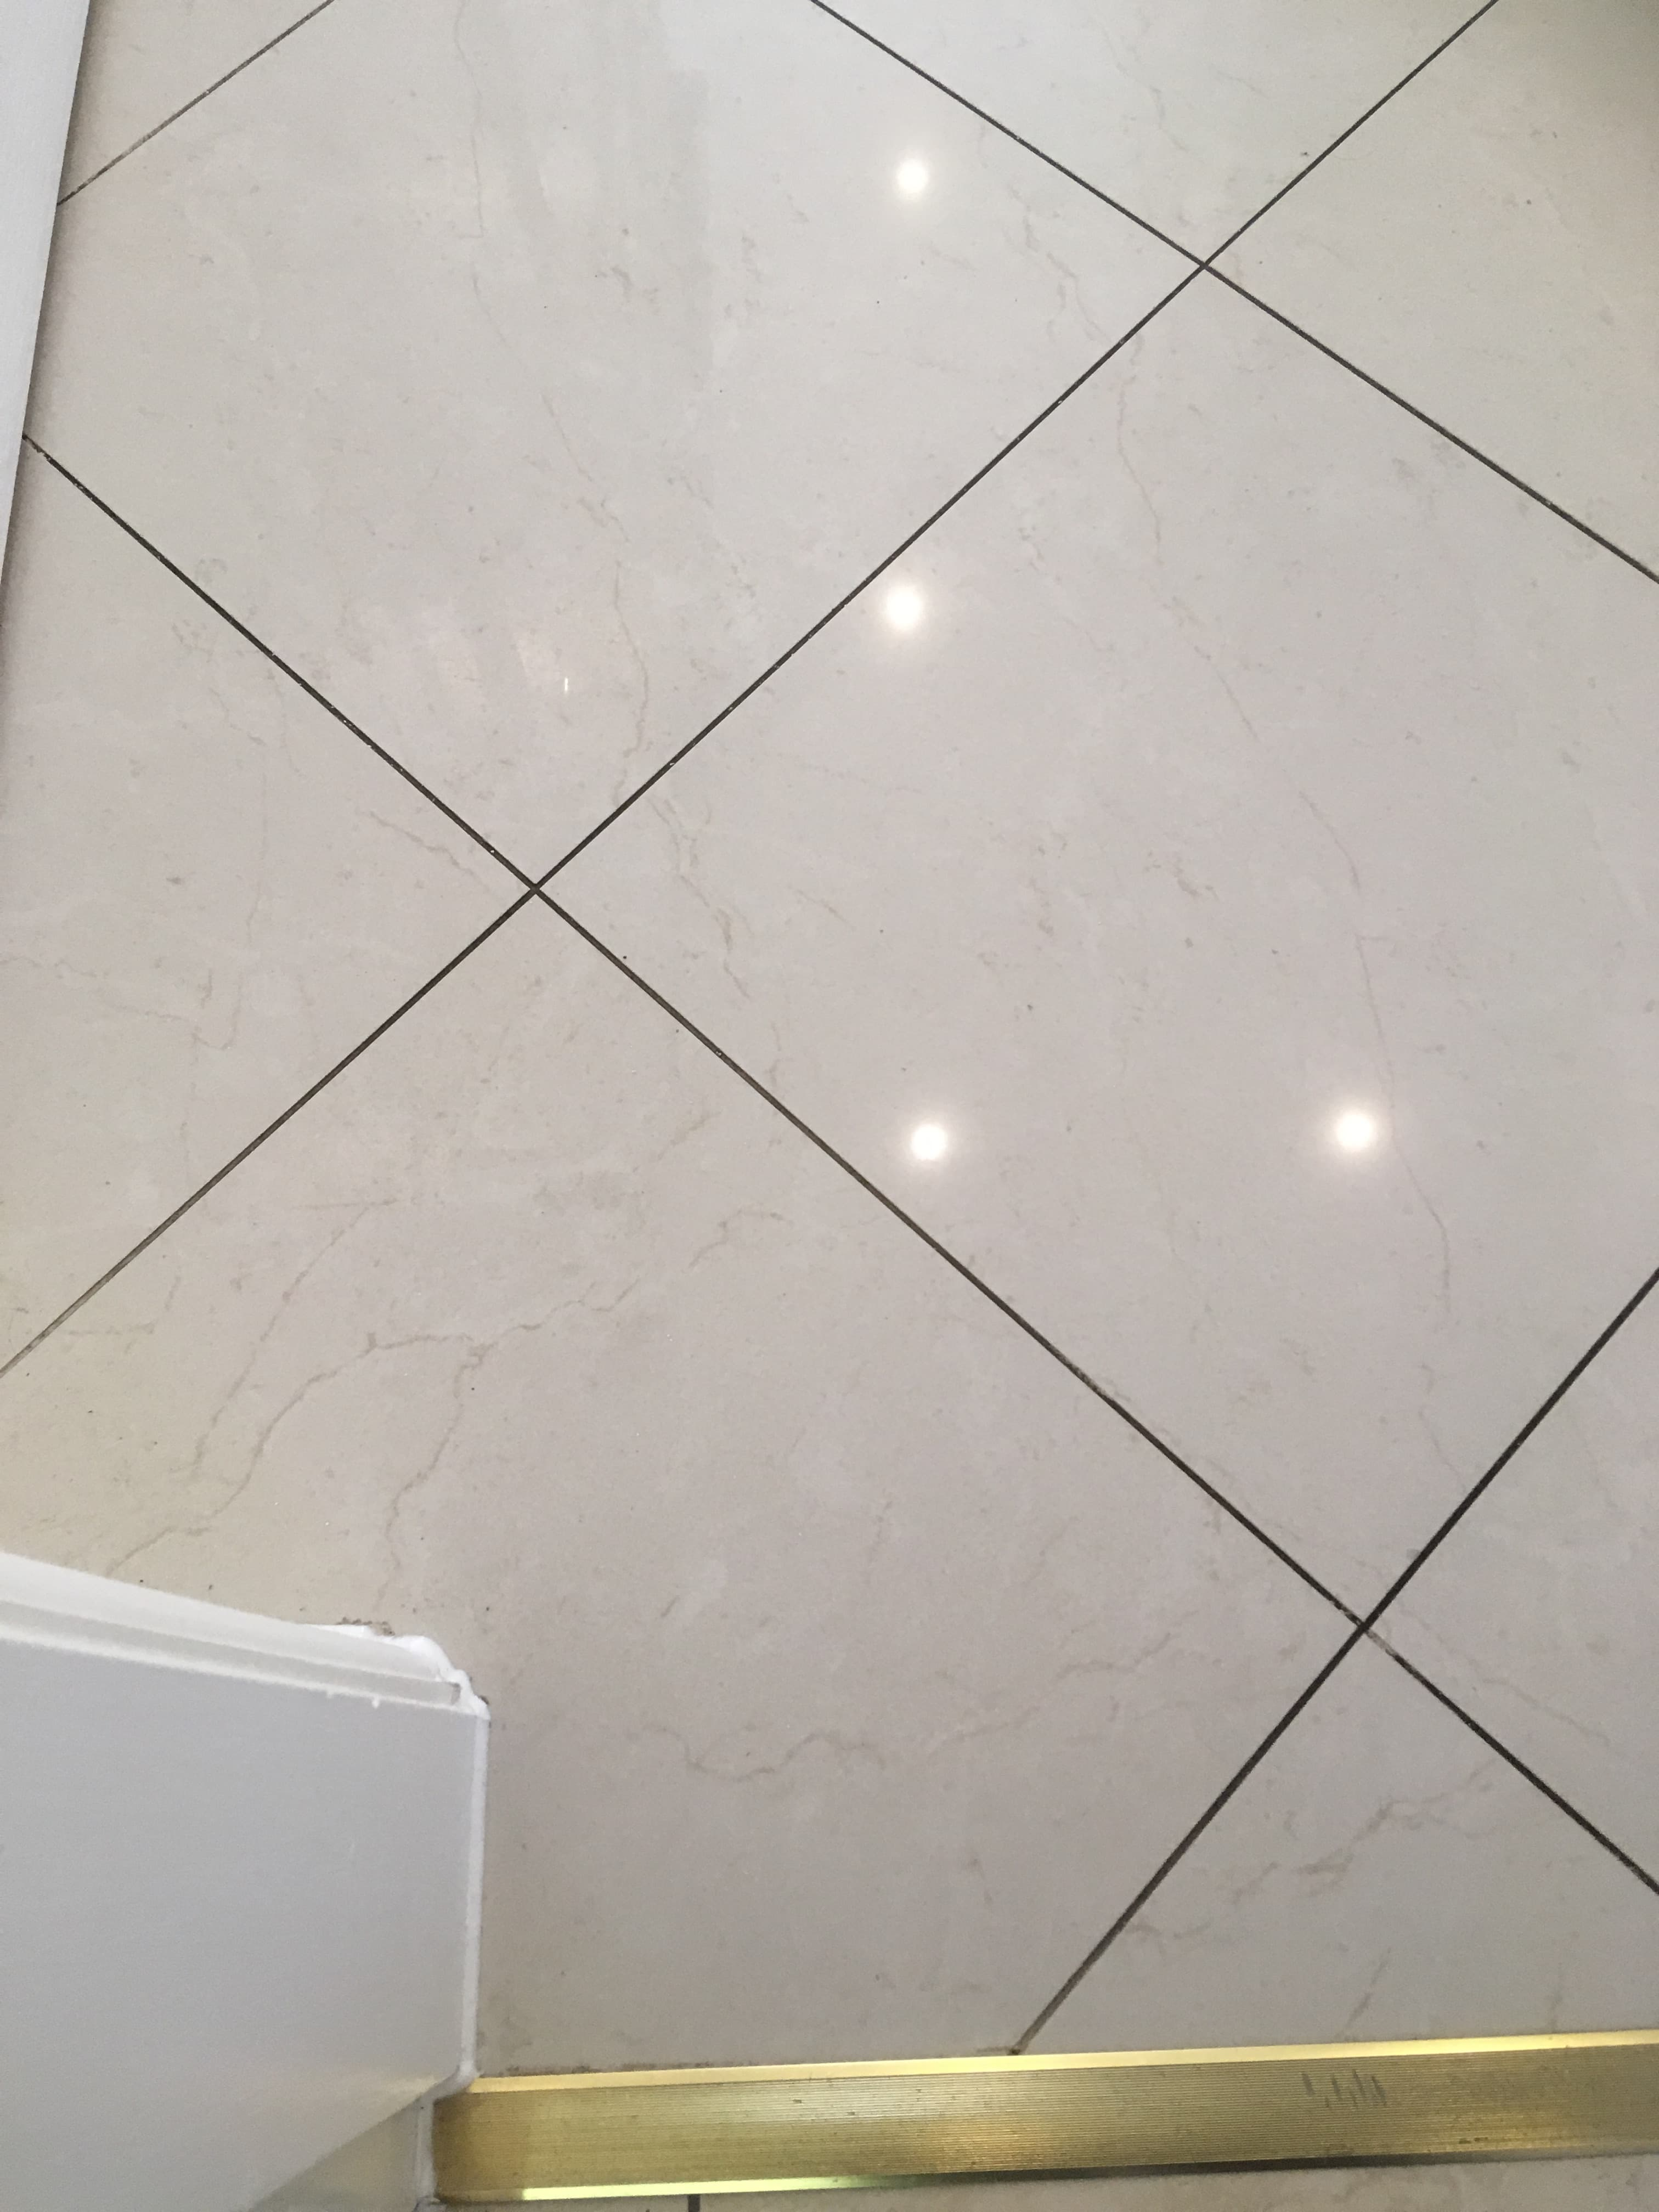 Ceramic Floor Tile Grout Before Cleaning Wilmslow